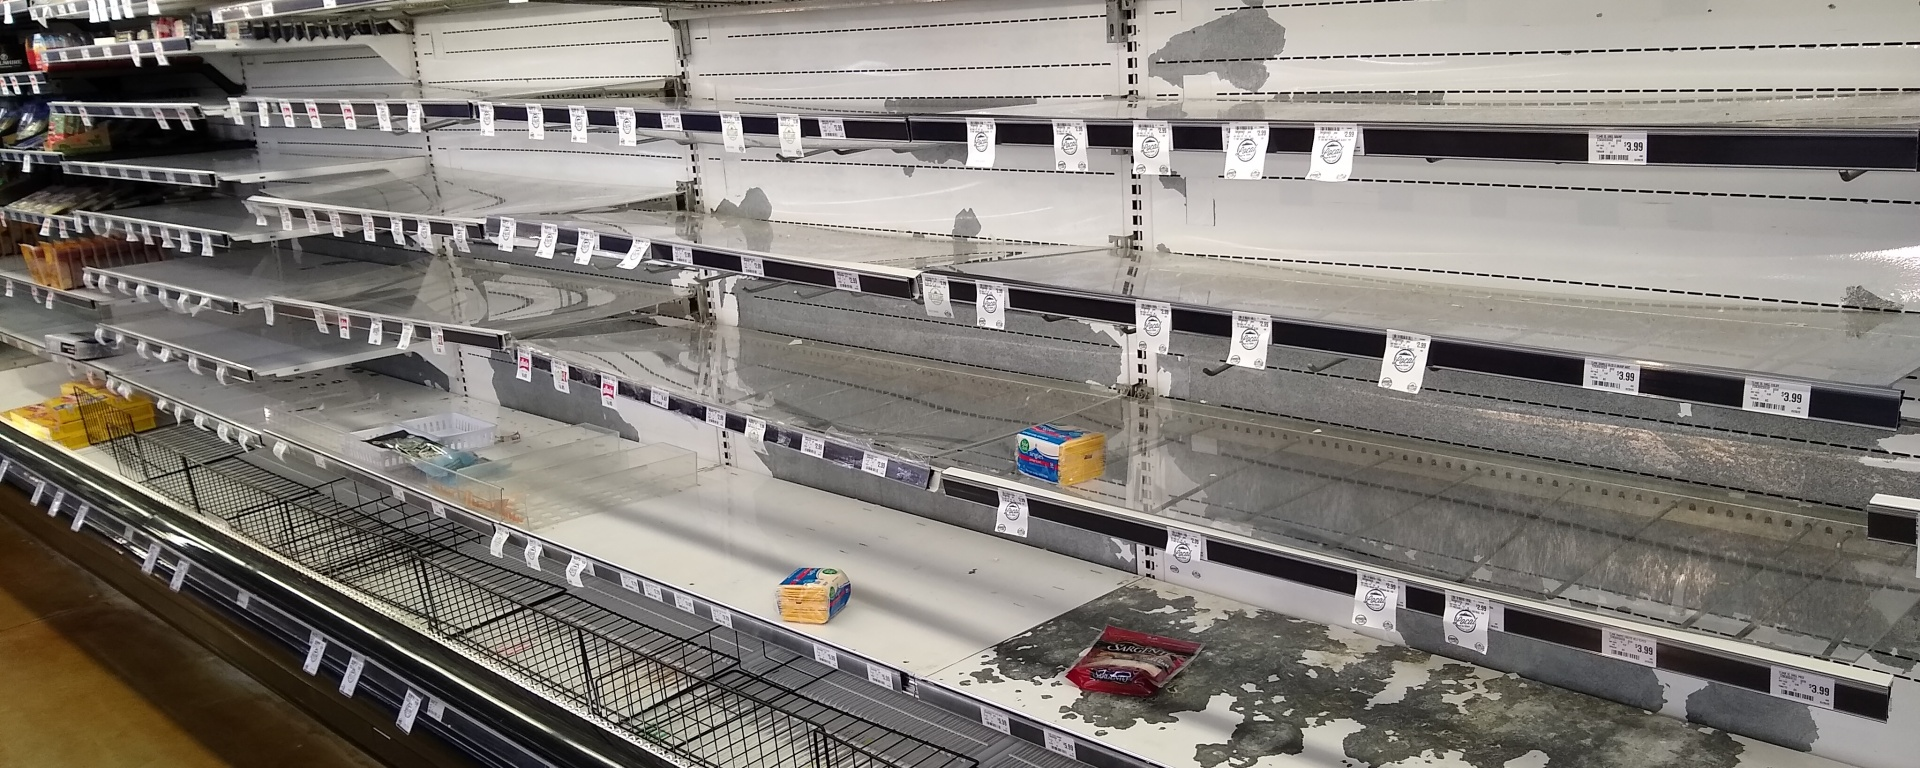 Supermarket shelves in Sandy, Utah, mid-March 2020.